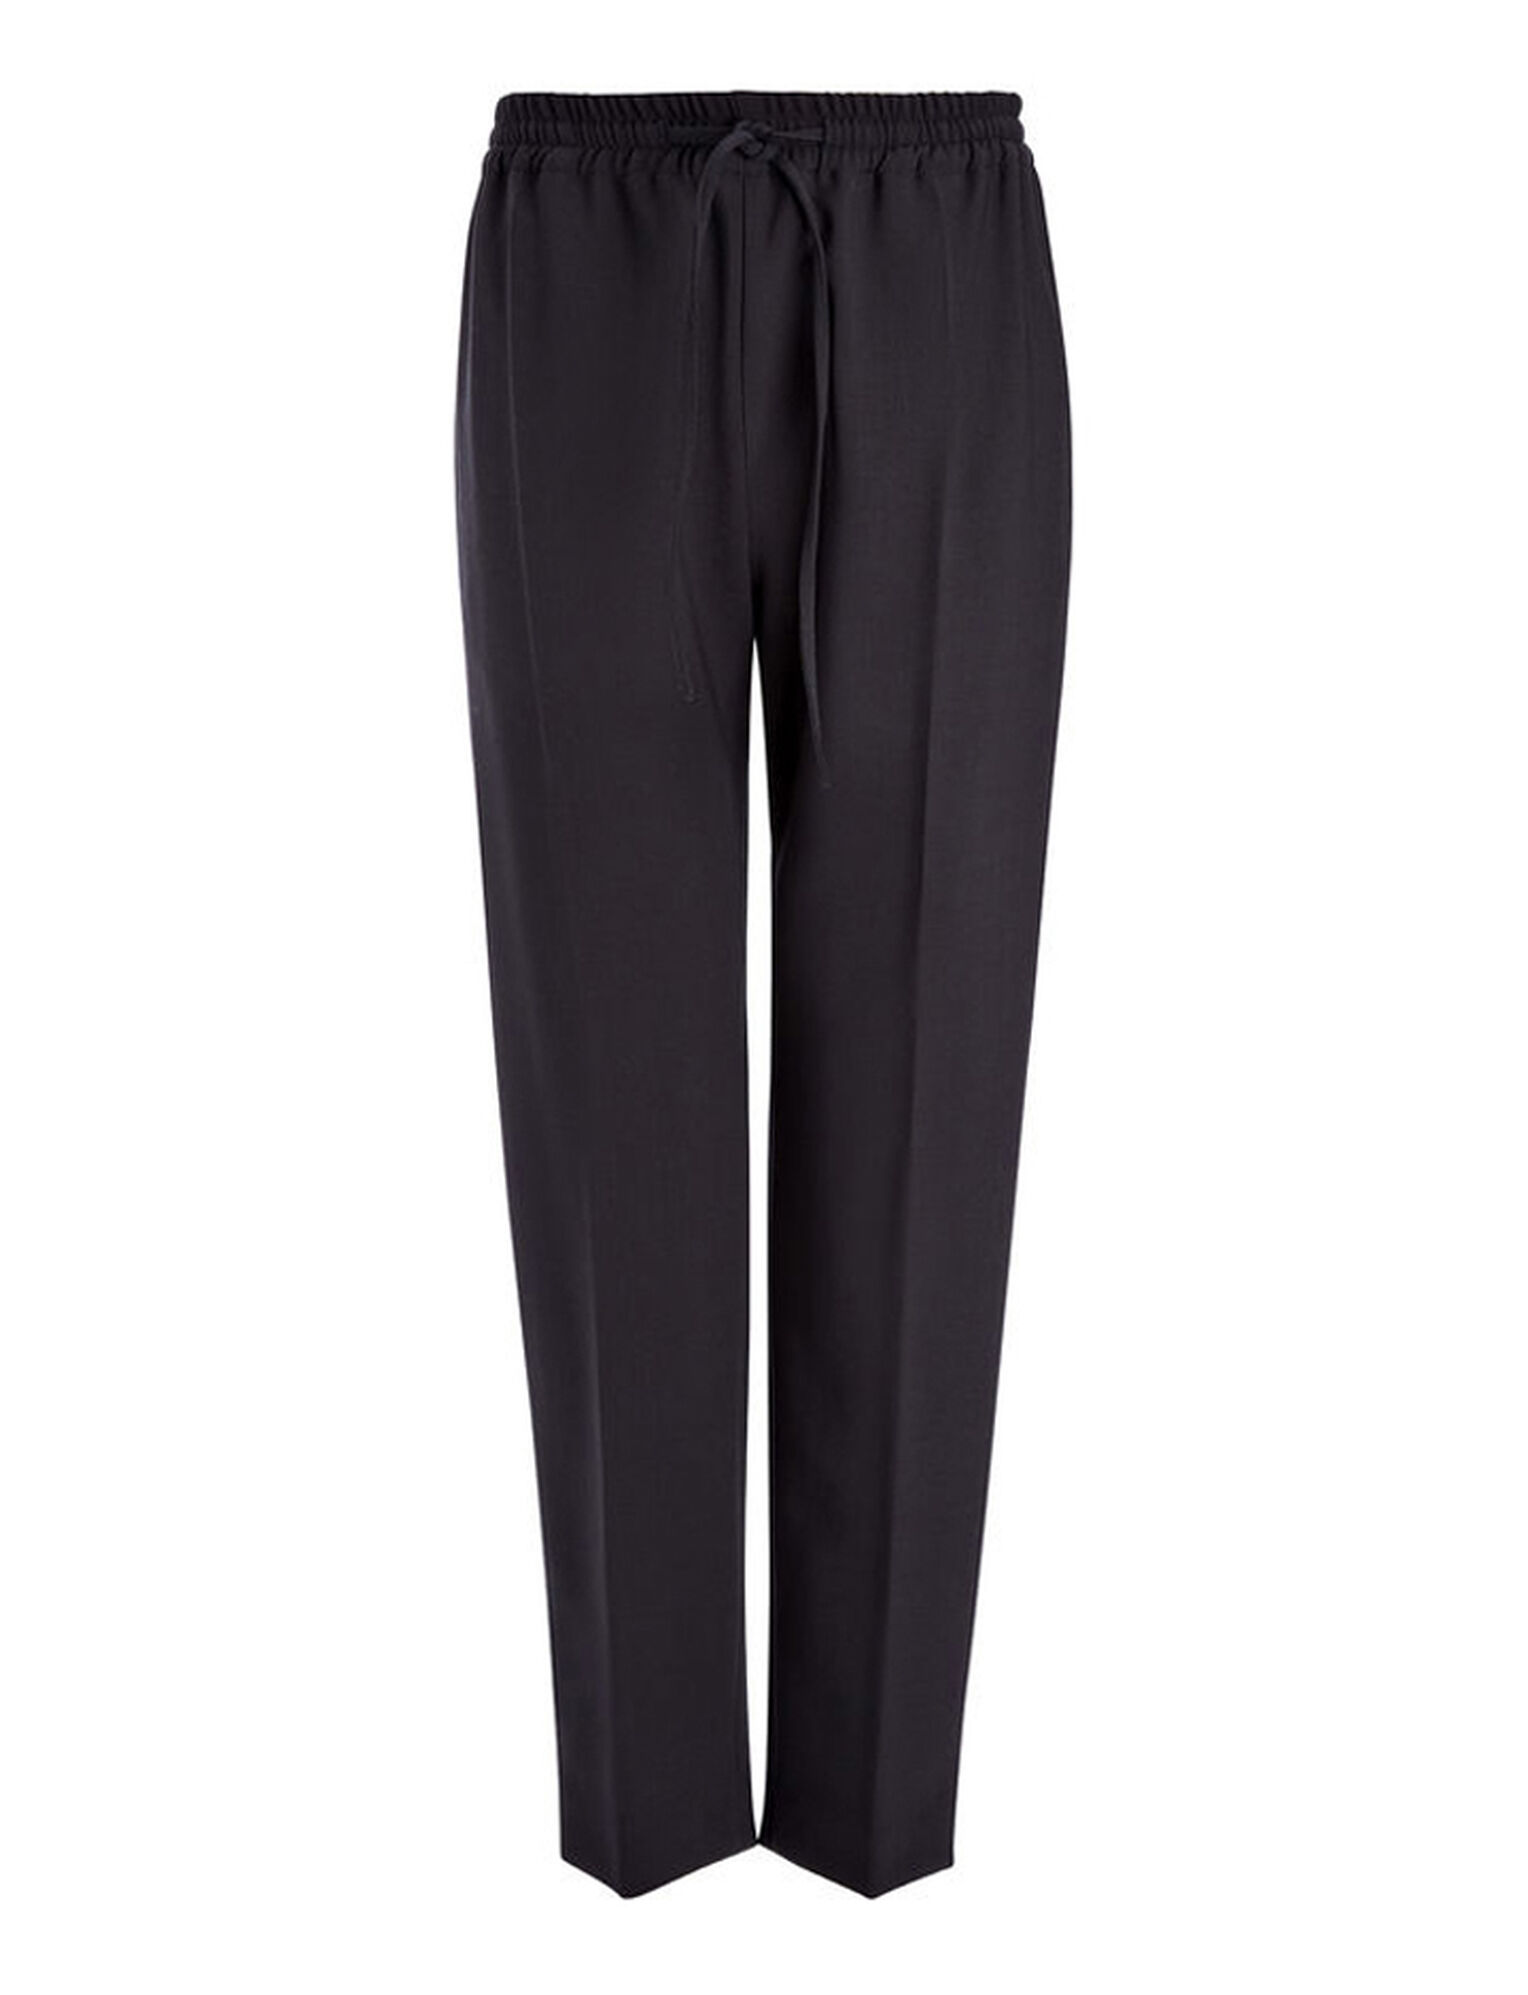 Joseph, Stretch Wool Louna Trouser, in NAVY